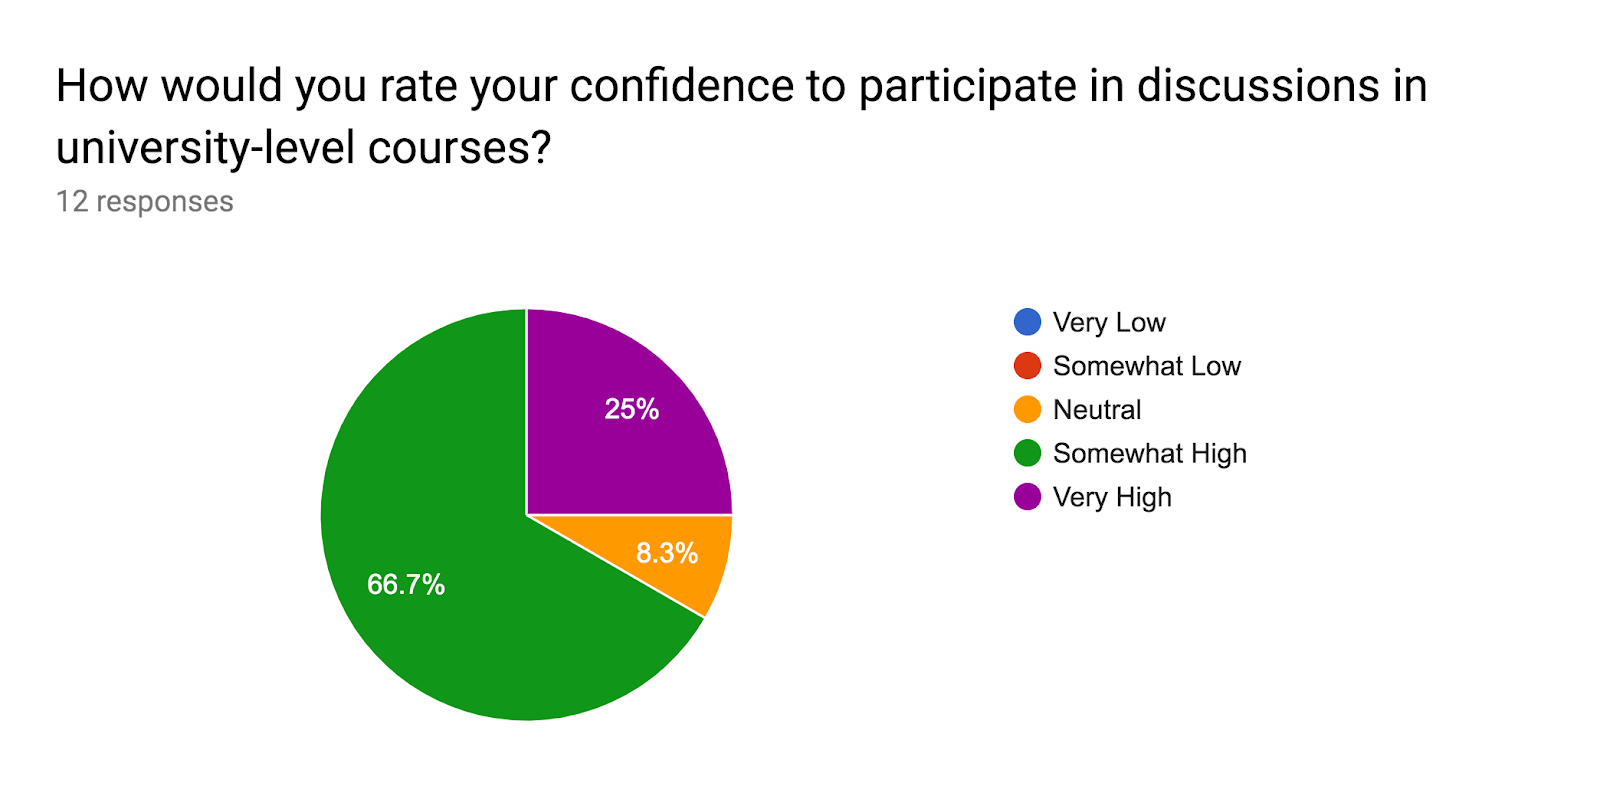 Forms response chart. Question title: How would you rate your confidence to participate in discussions in university-level courses?. Number of responses: 12 responses.